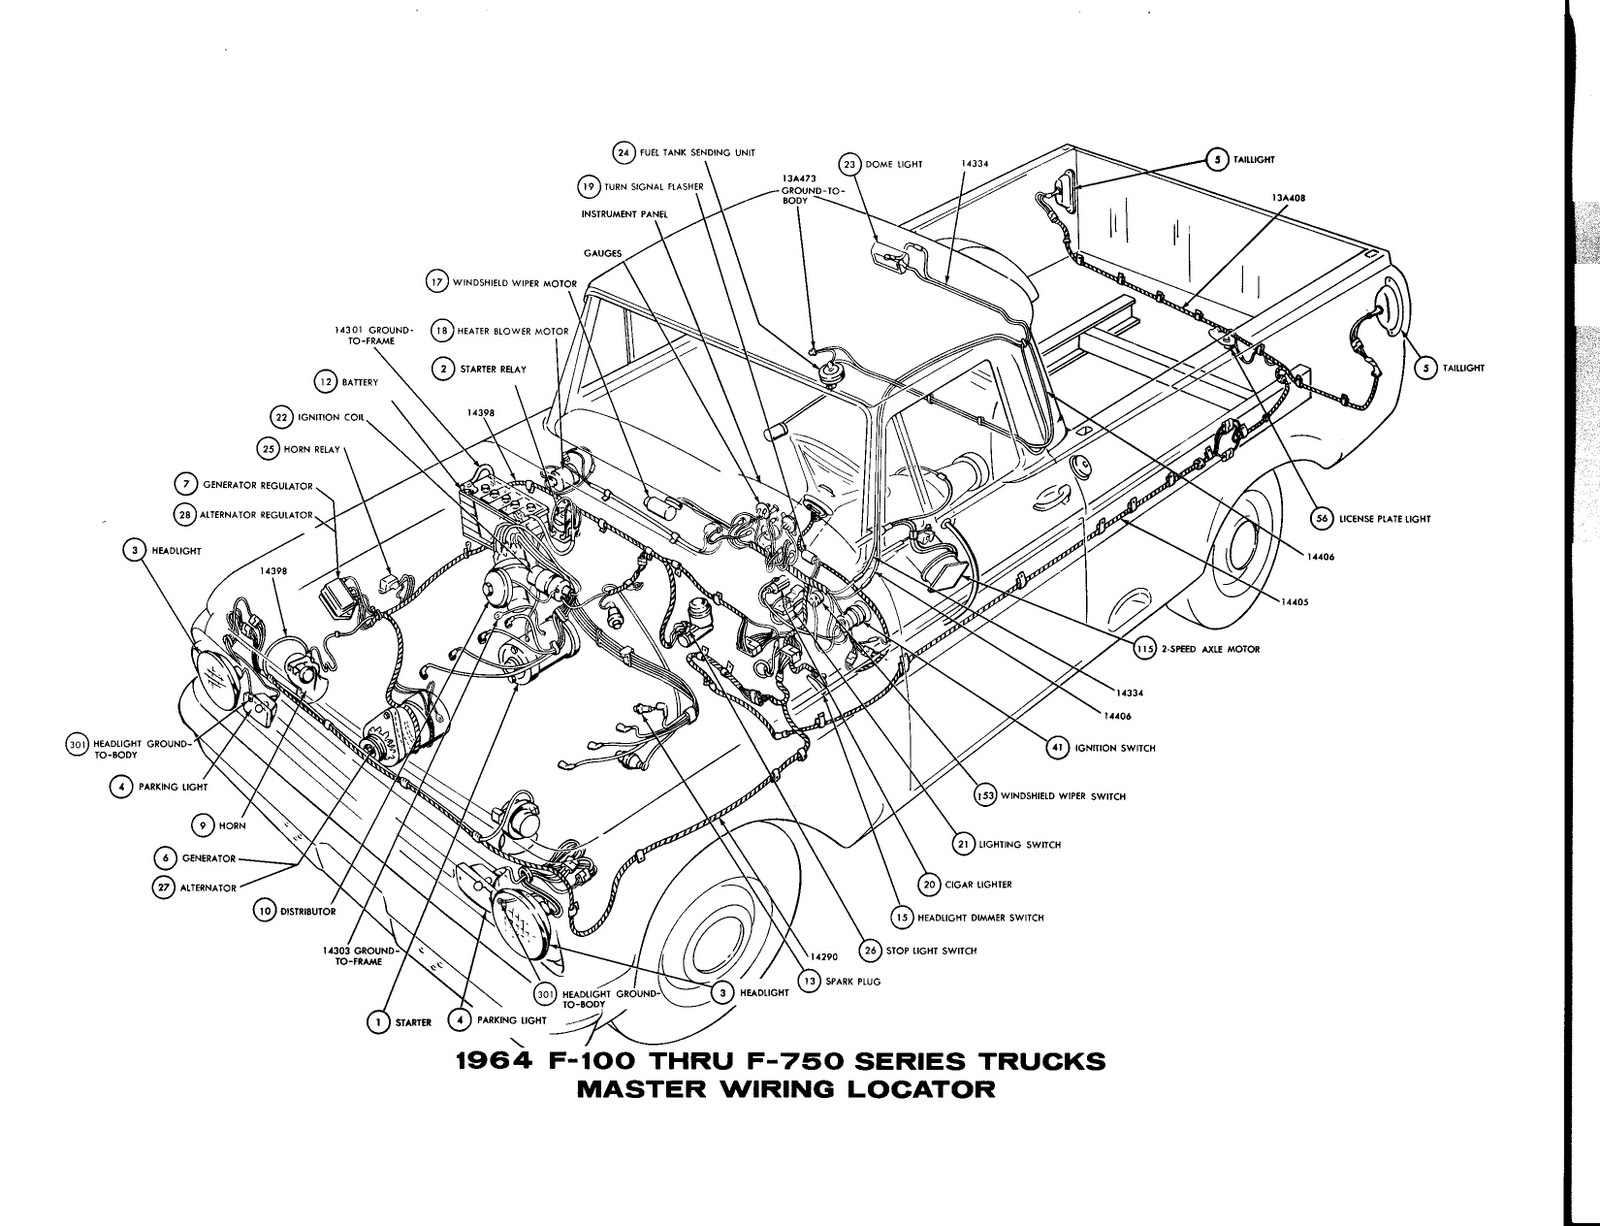 1964 Ford F 100 Thru F 750 Truck master wiring free auto wiring diagram 1964 ford f 100 thru f 750 truck master ford f750 fuse box at sewacar.co